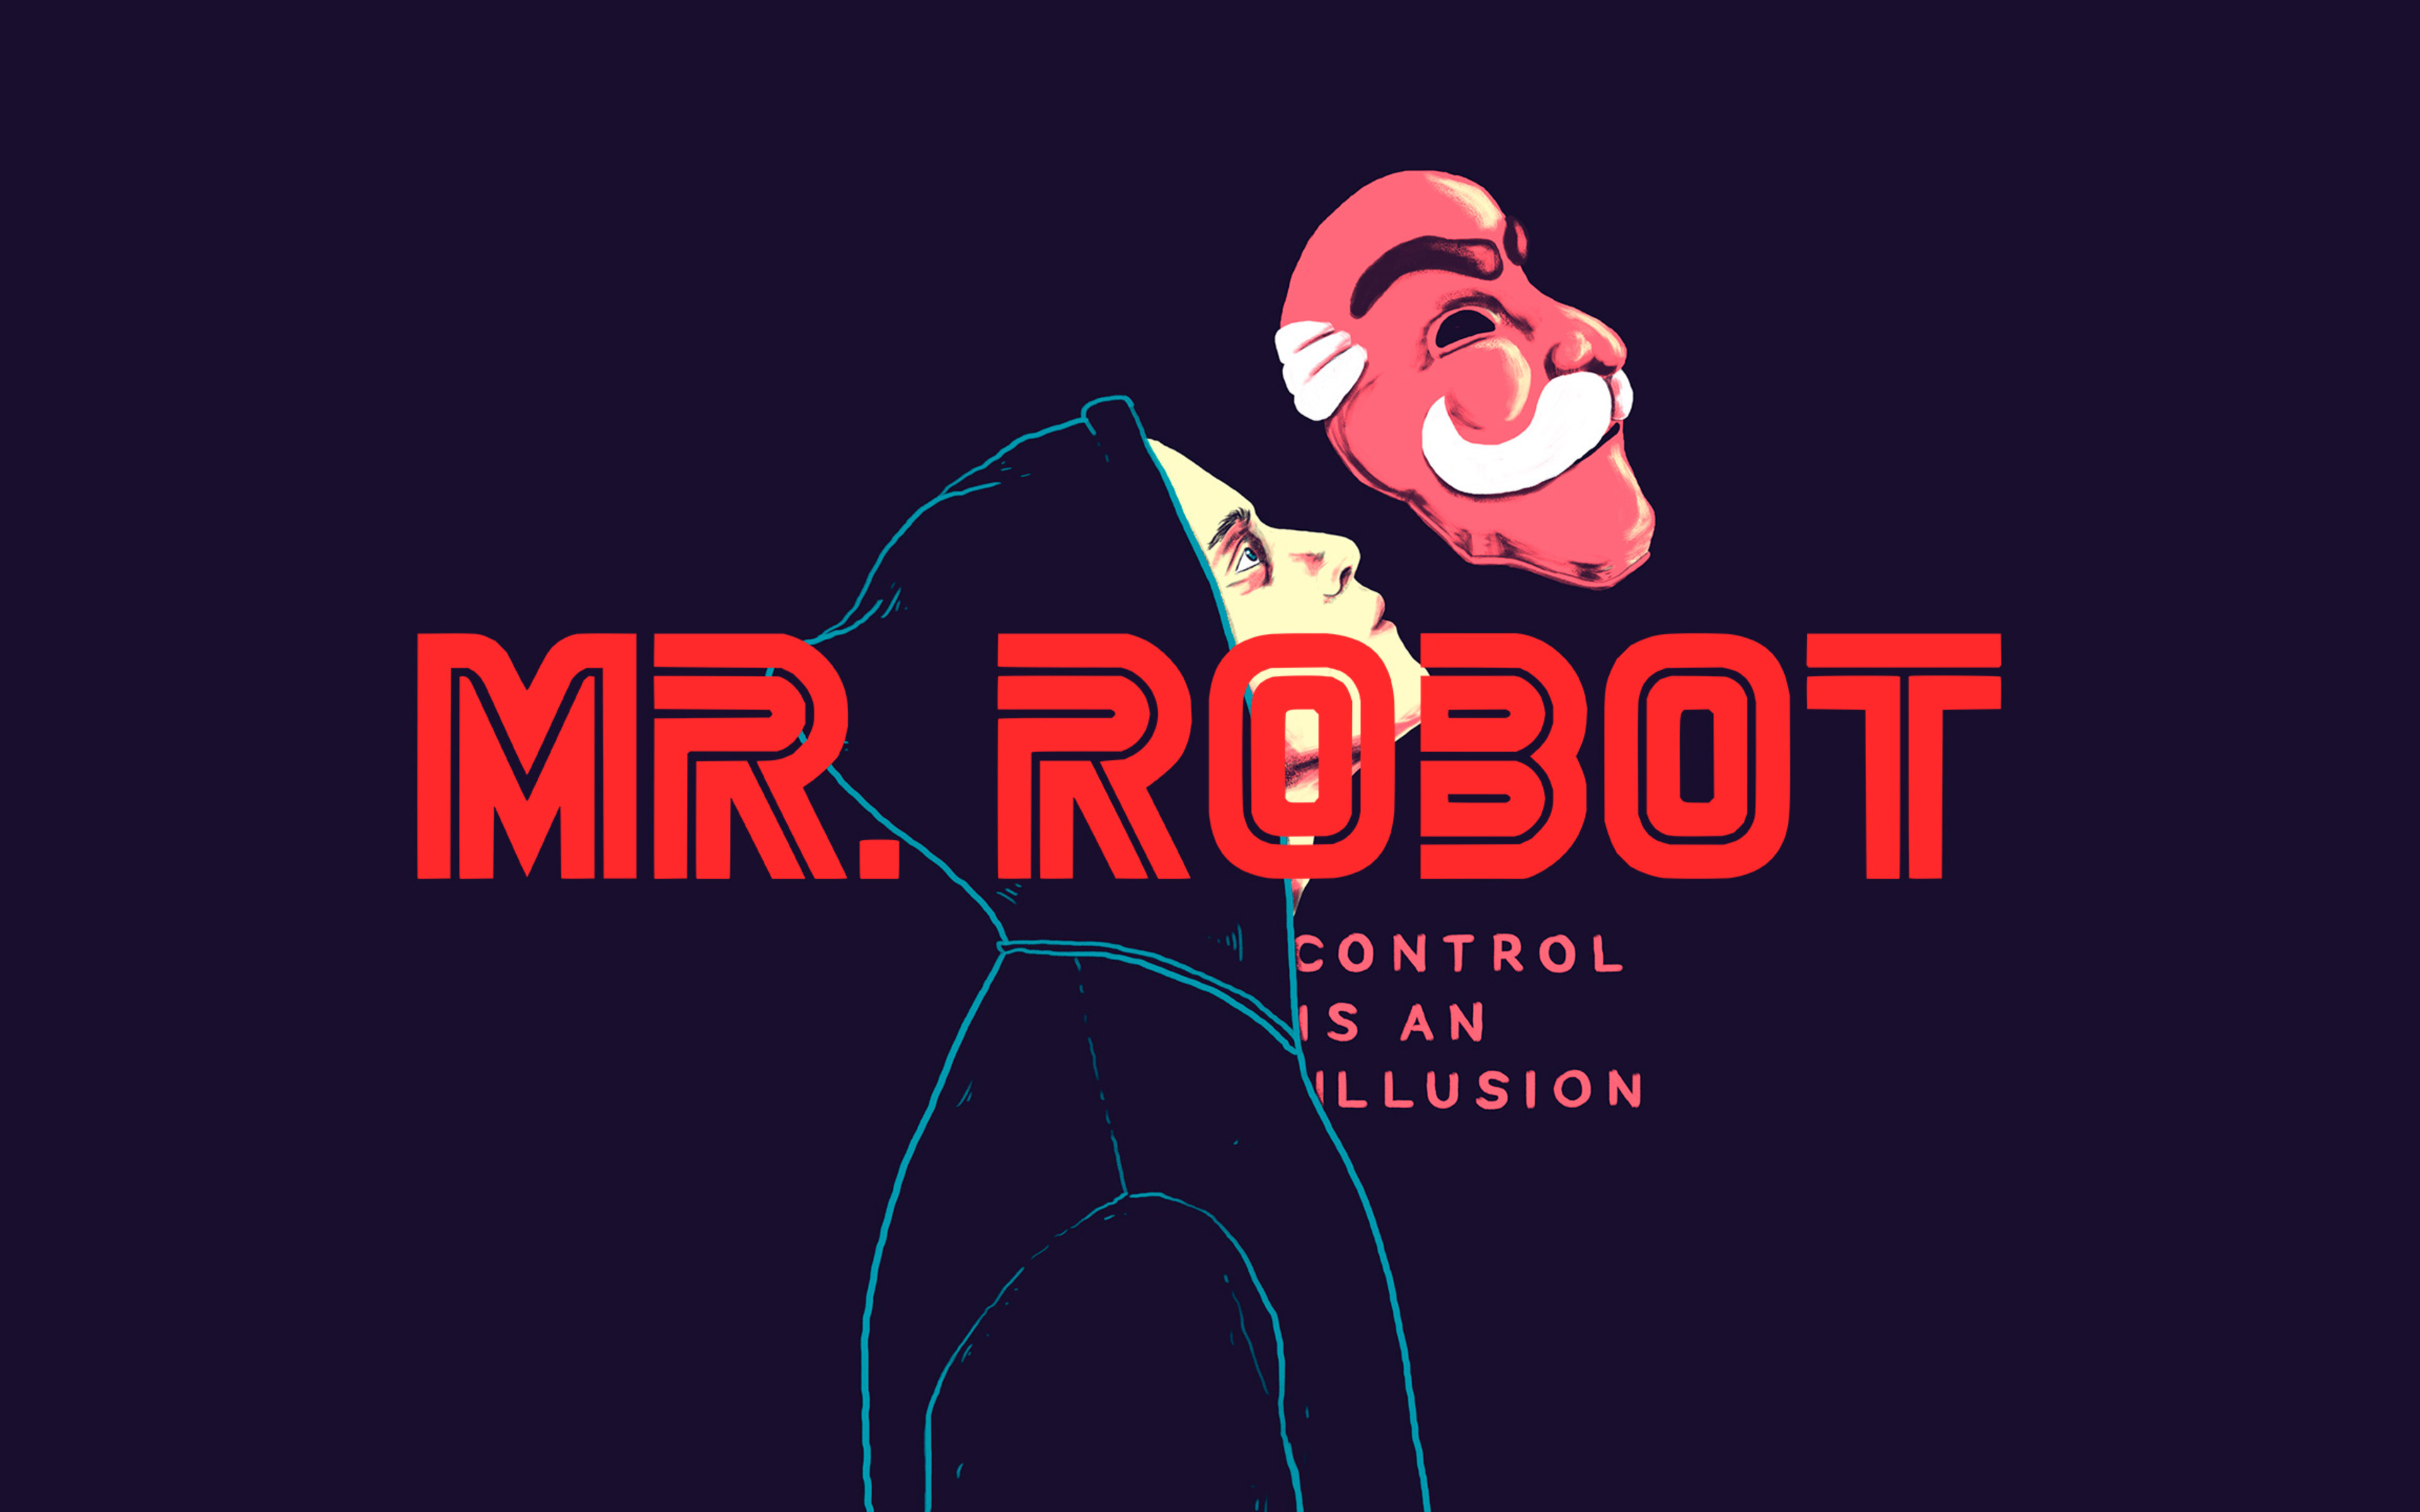 mr-robot-illustration-fan-art-g4.jpg